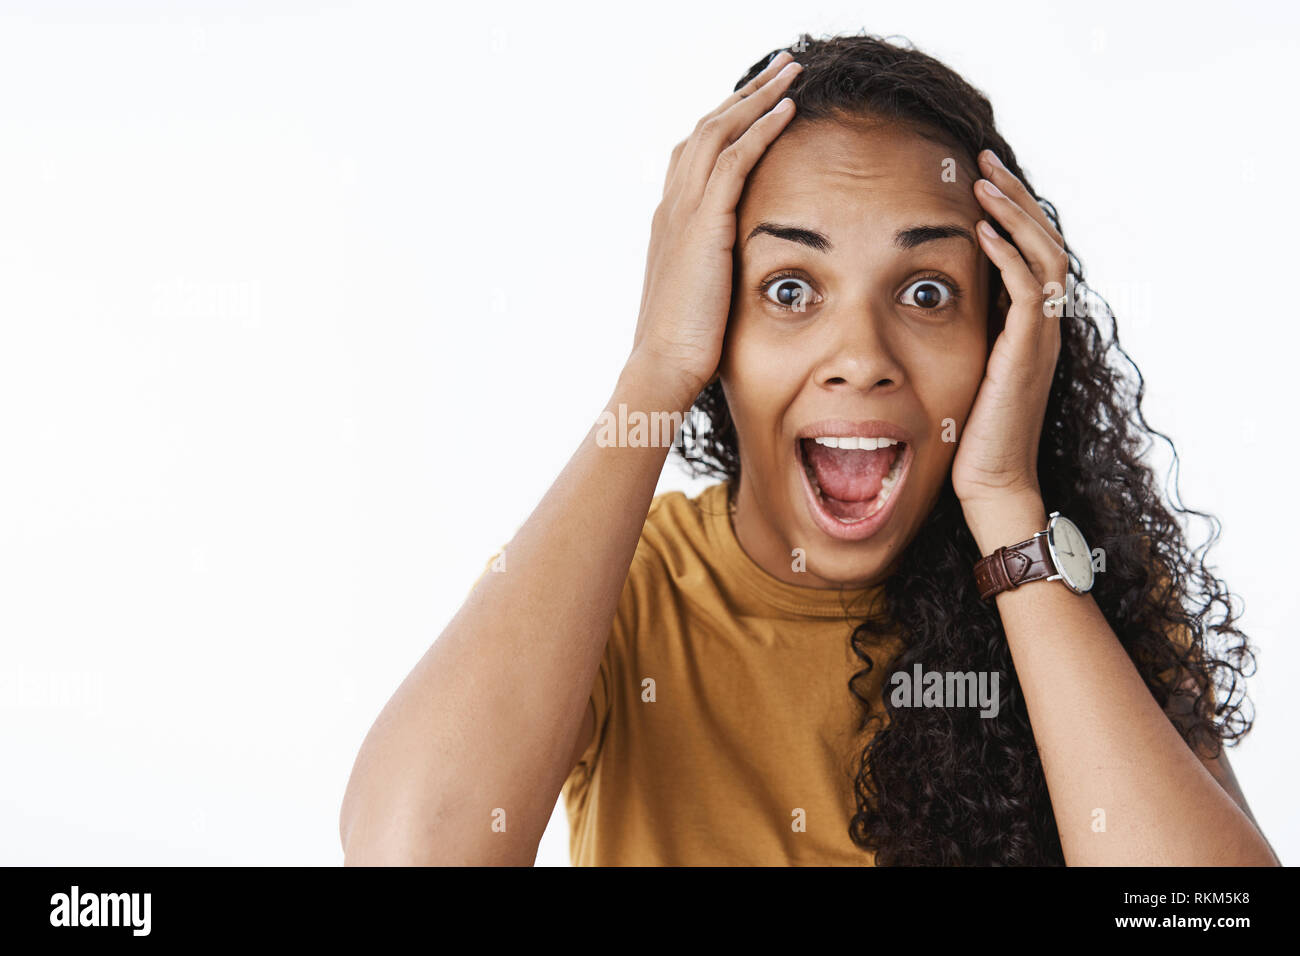 Close-up shot of thrilled astonished happy african-american woman with curly hair dropping jaw yelling from excitement and joy holding hands on head - Stock Image